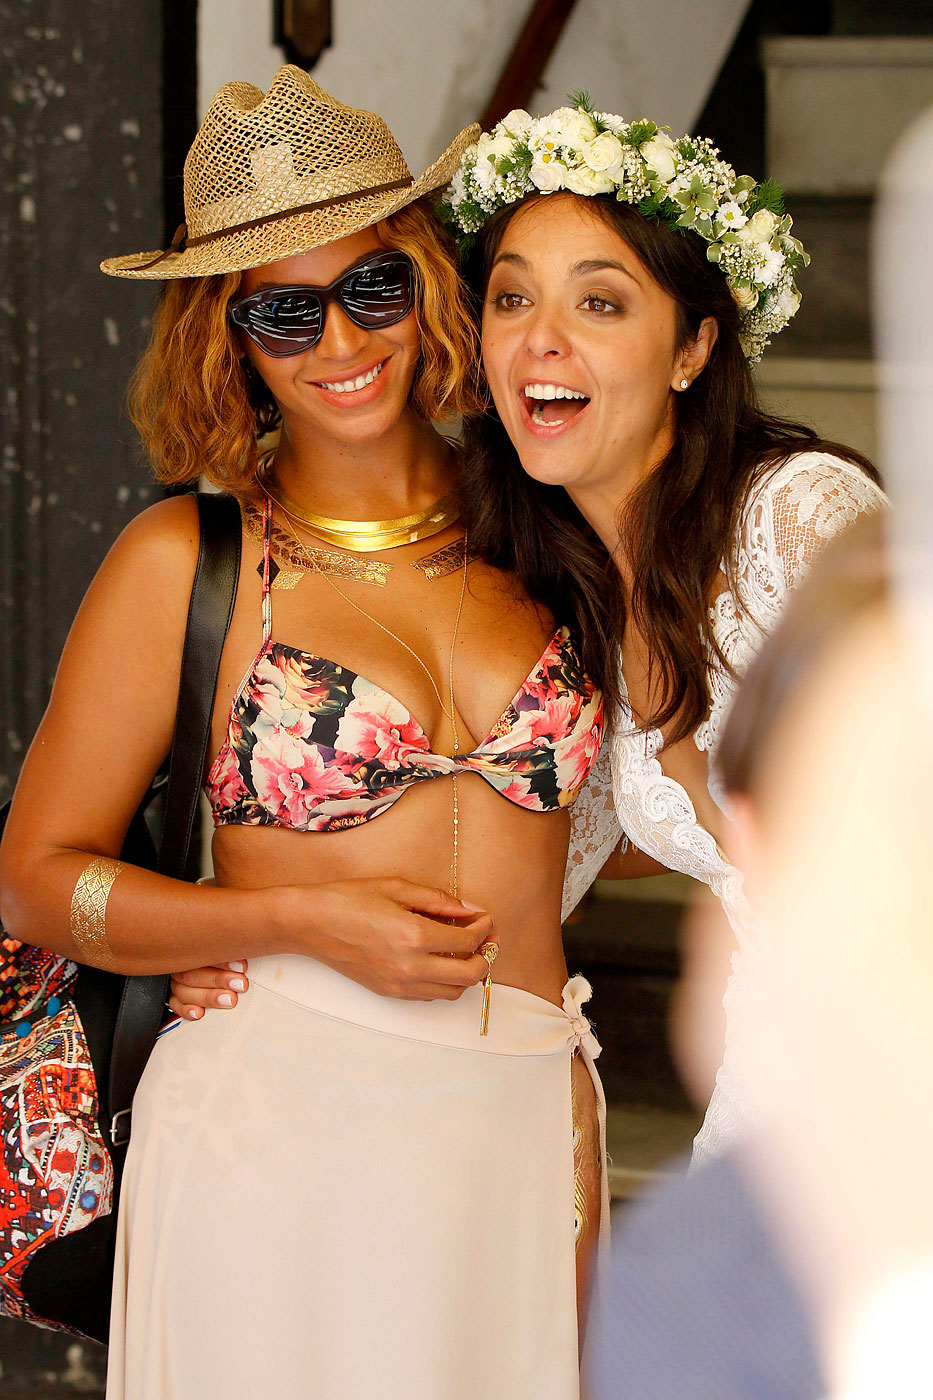 Beyoncé takes a picture with a bride while vacationing in Portofino, Italy on Sept. 6